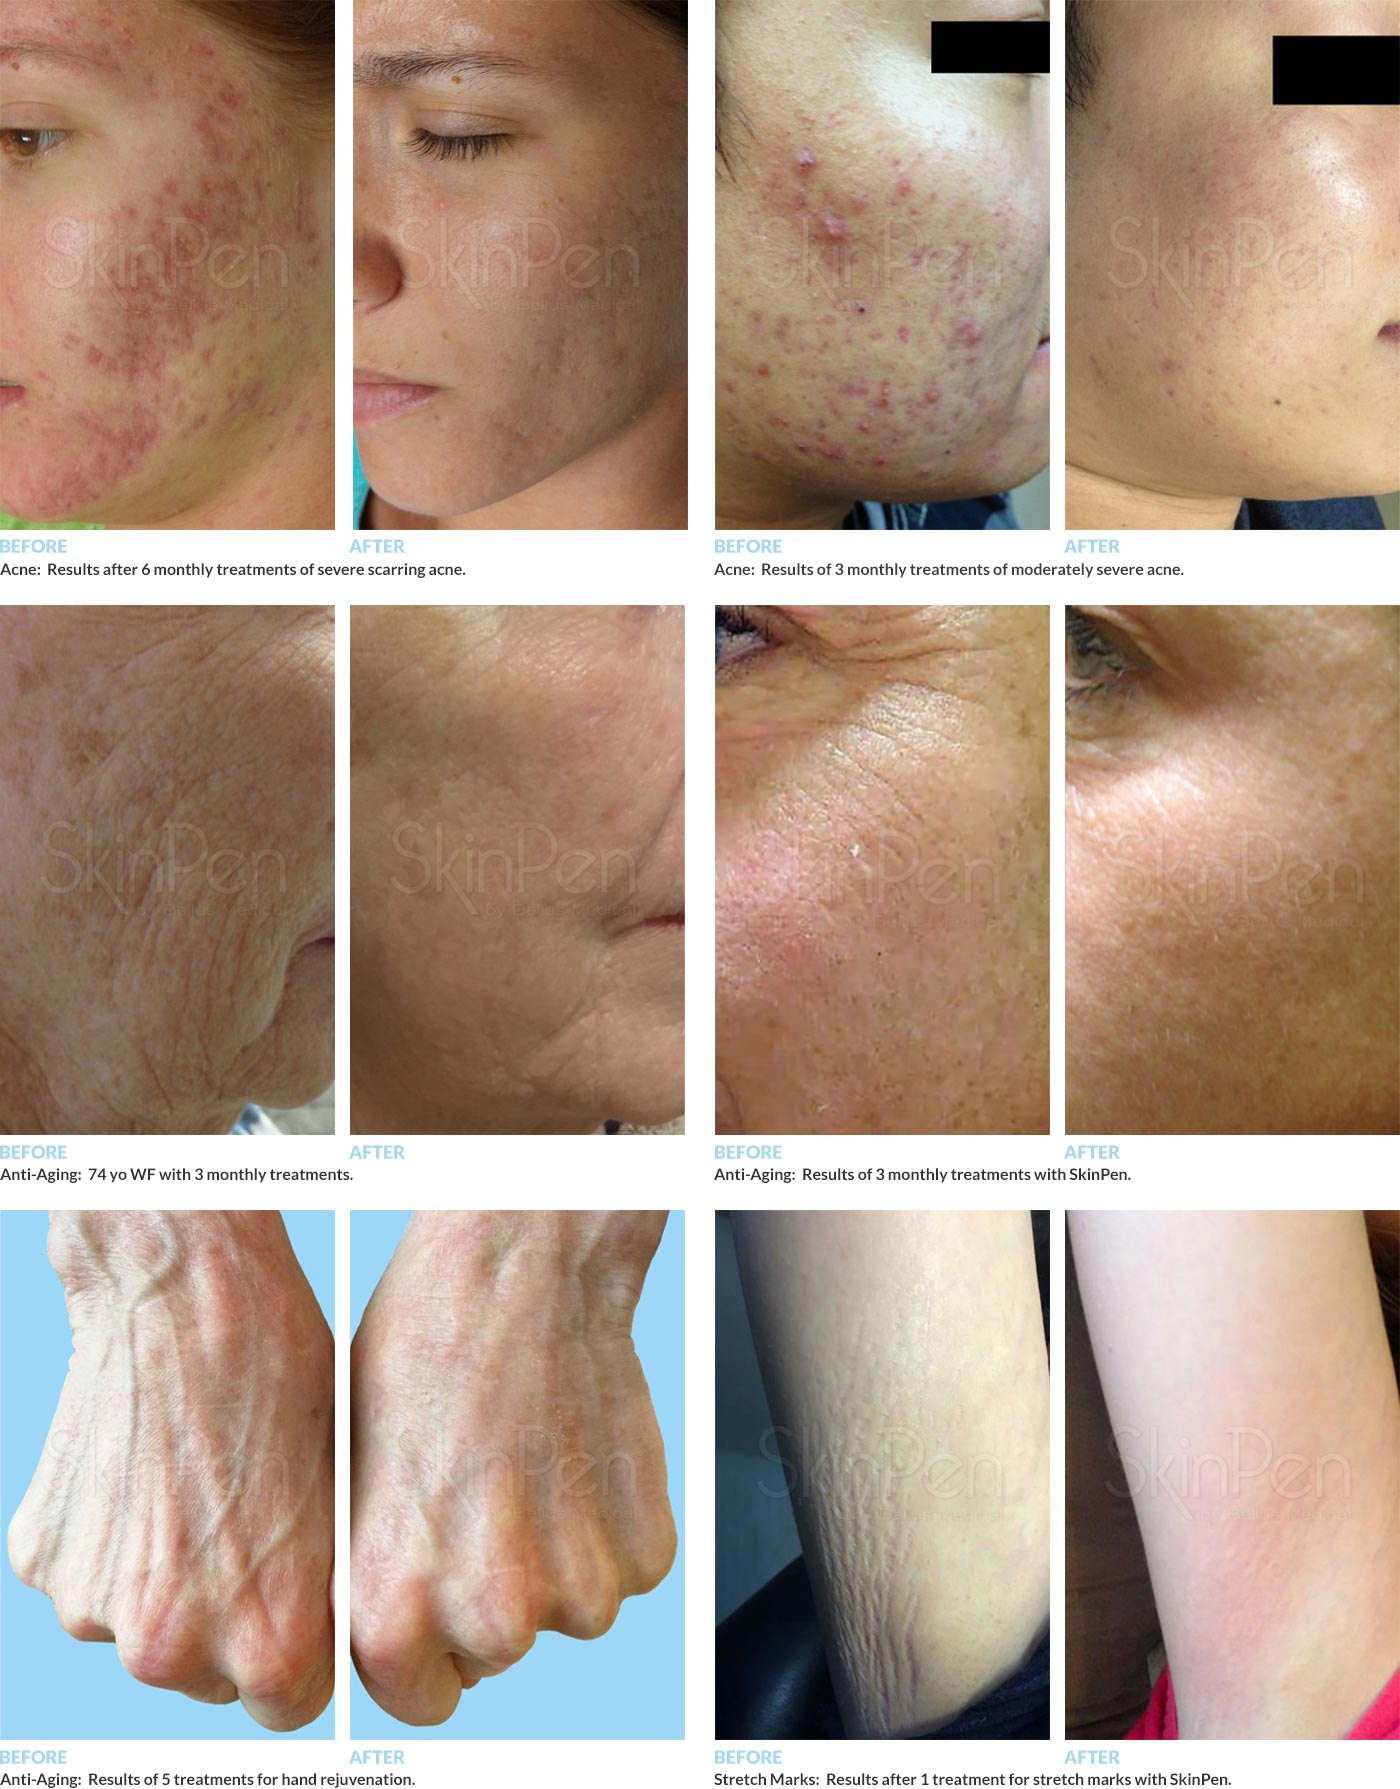 Before and After Pictures of Treatment with the SkinPen